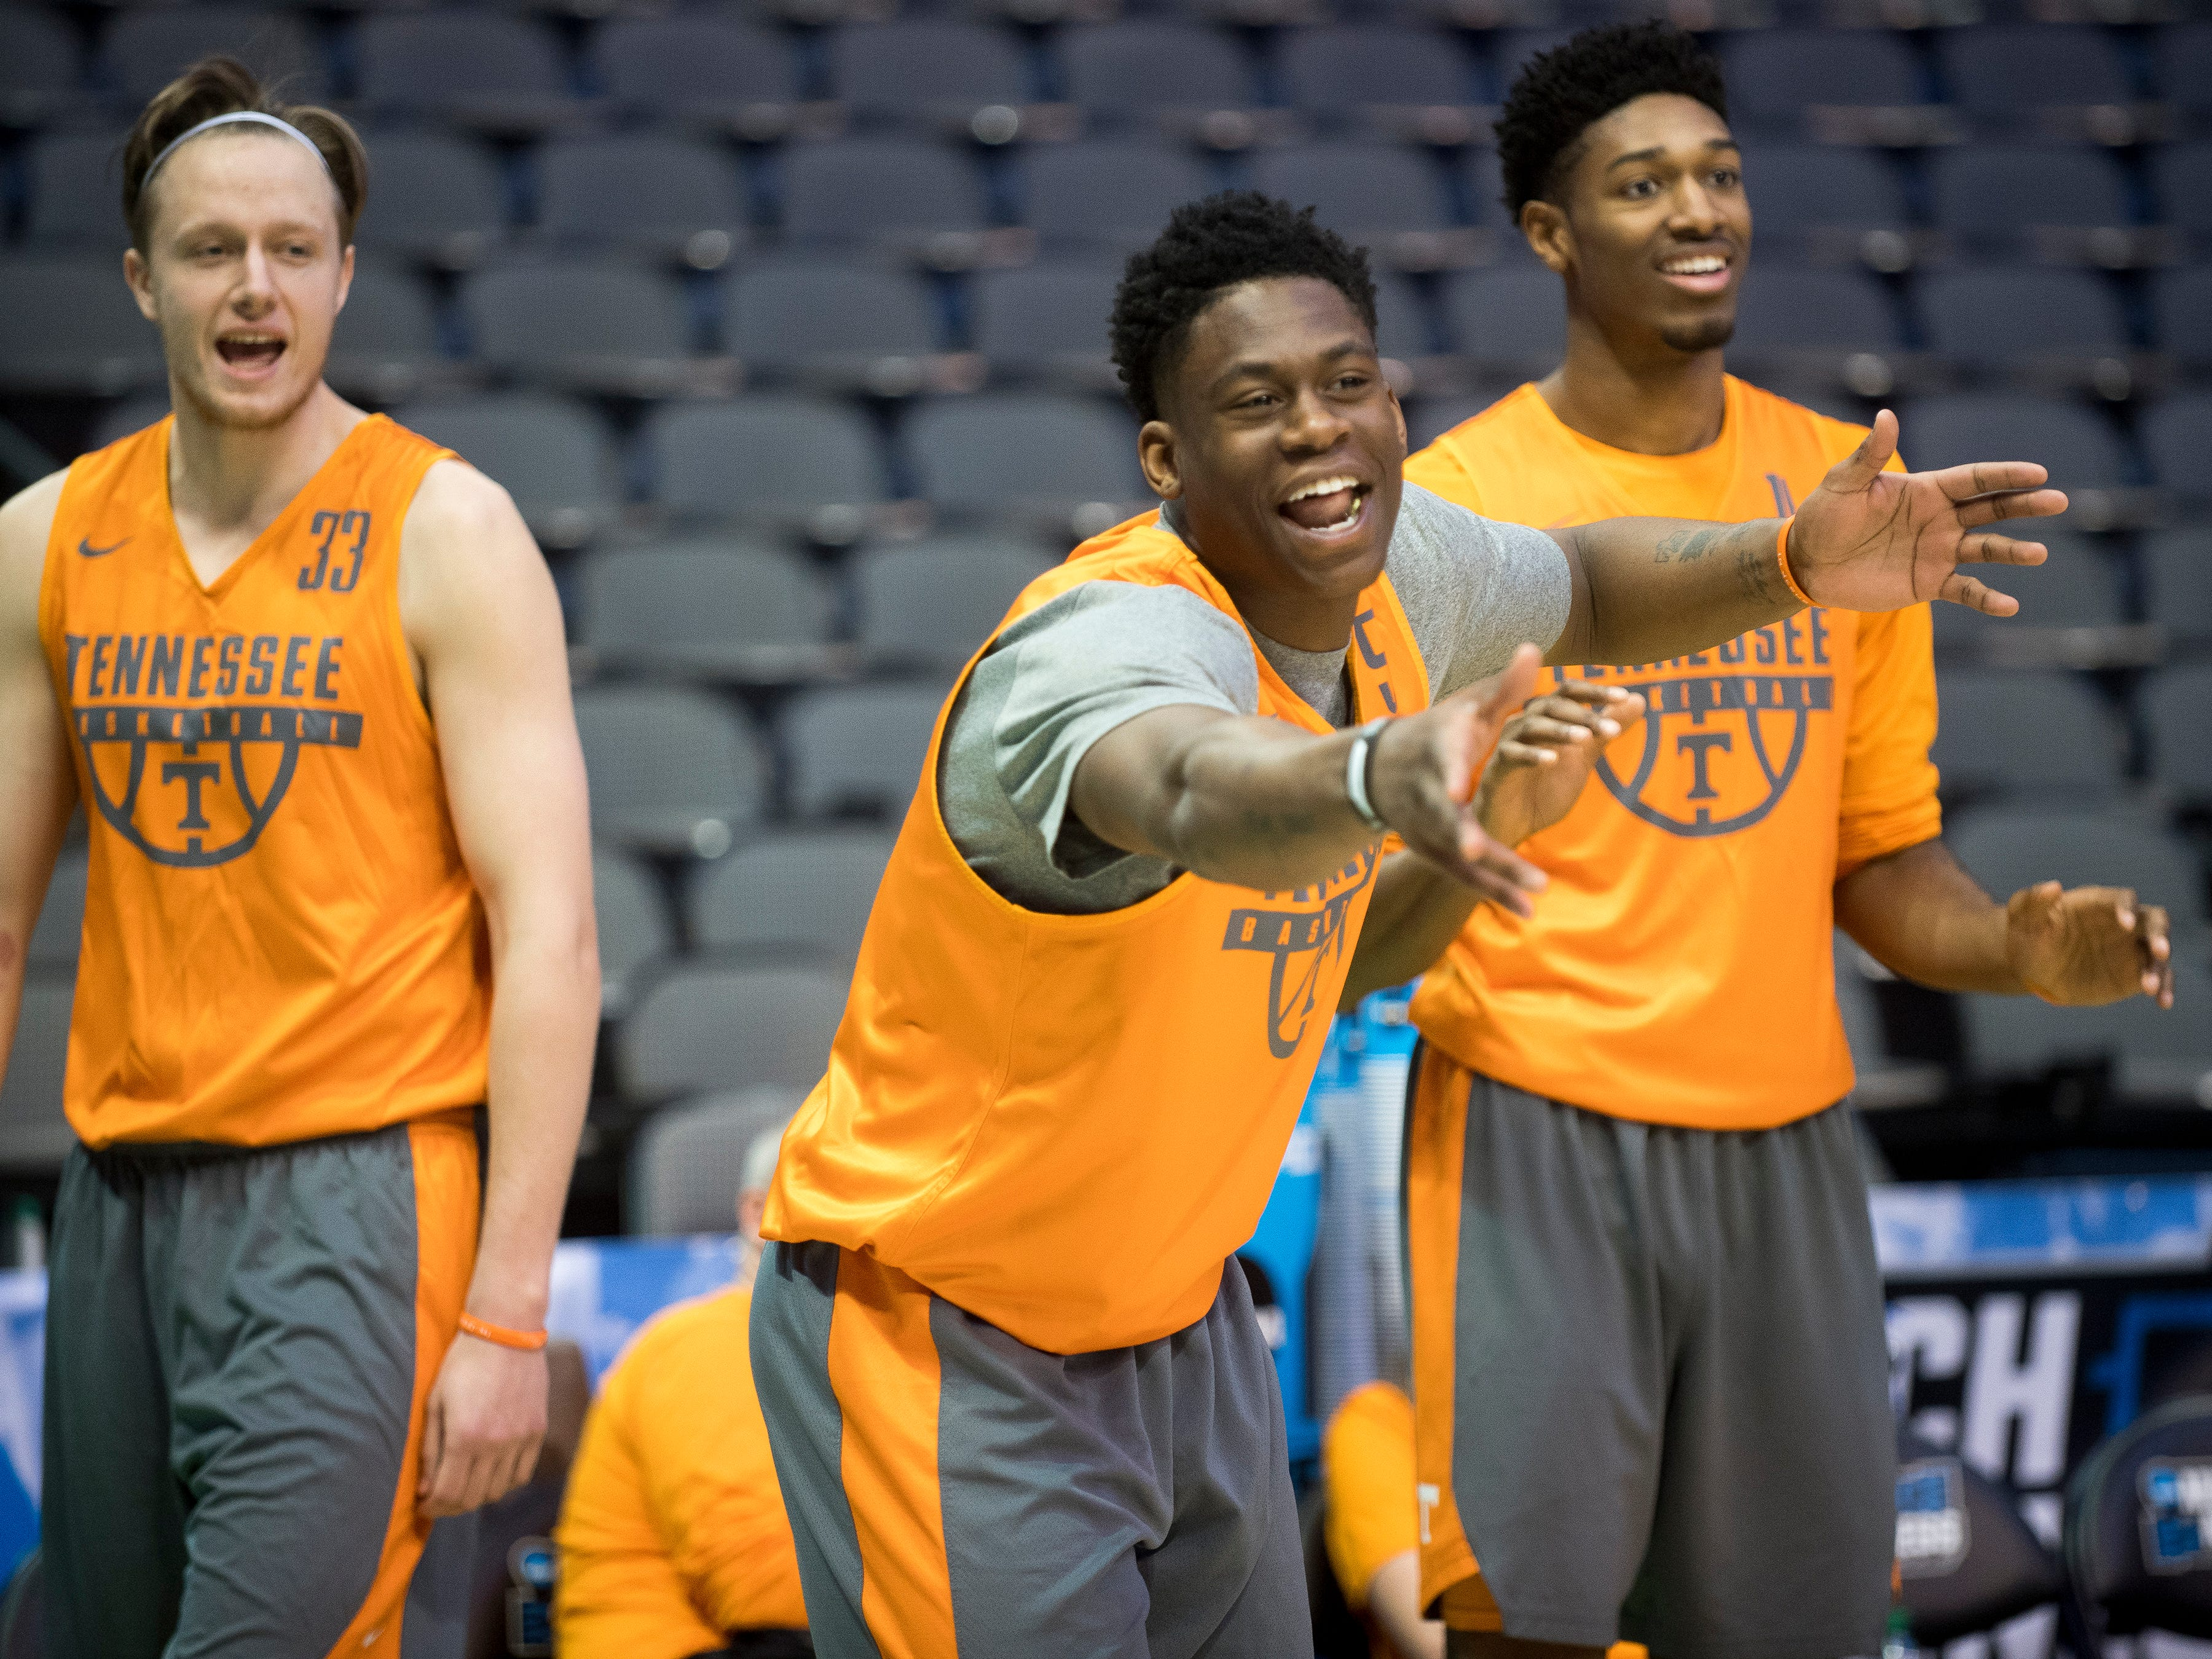 Tennessee forward Admiral Schofield (5), Tennessee forward Kyle Alexander (11) and Tennessee forward Zach Kent (33) playfully taunt their teammates during practice at American Airlines Arena on Wednesday, March 14, 2018, ahead of the NCAA Tournament first round game between Tennessee and Wright State.